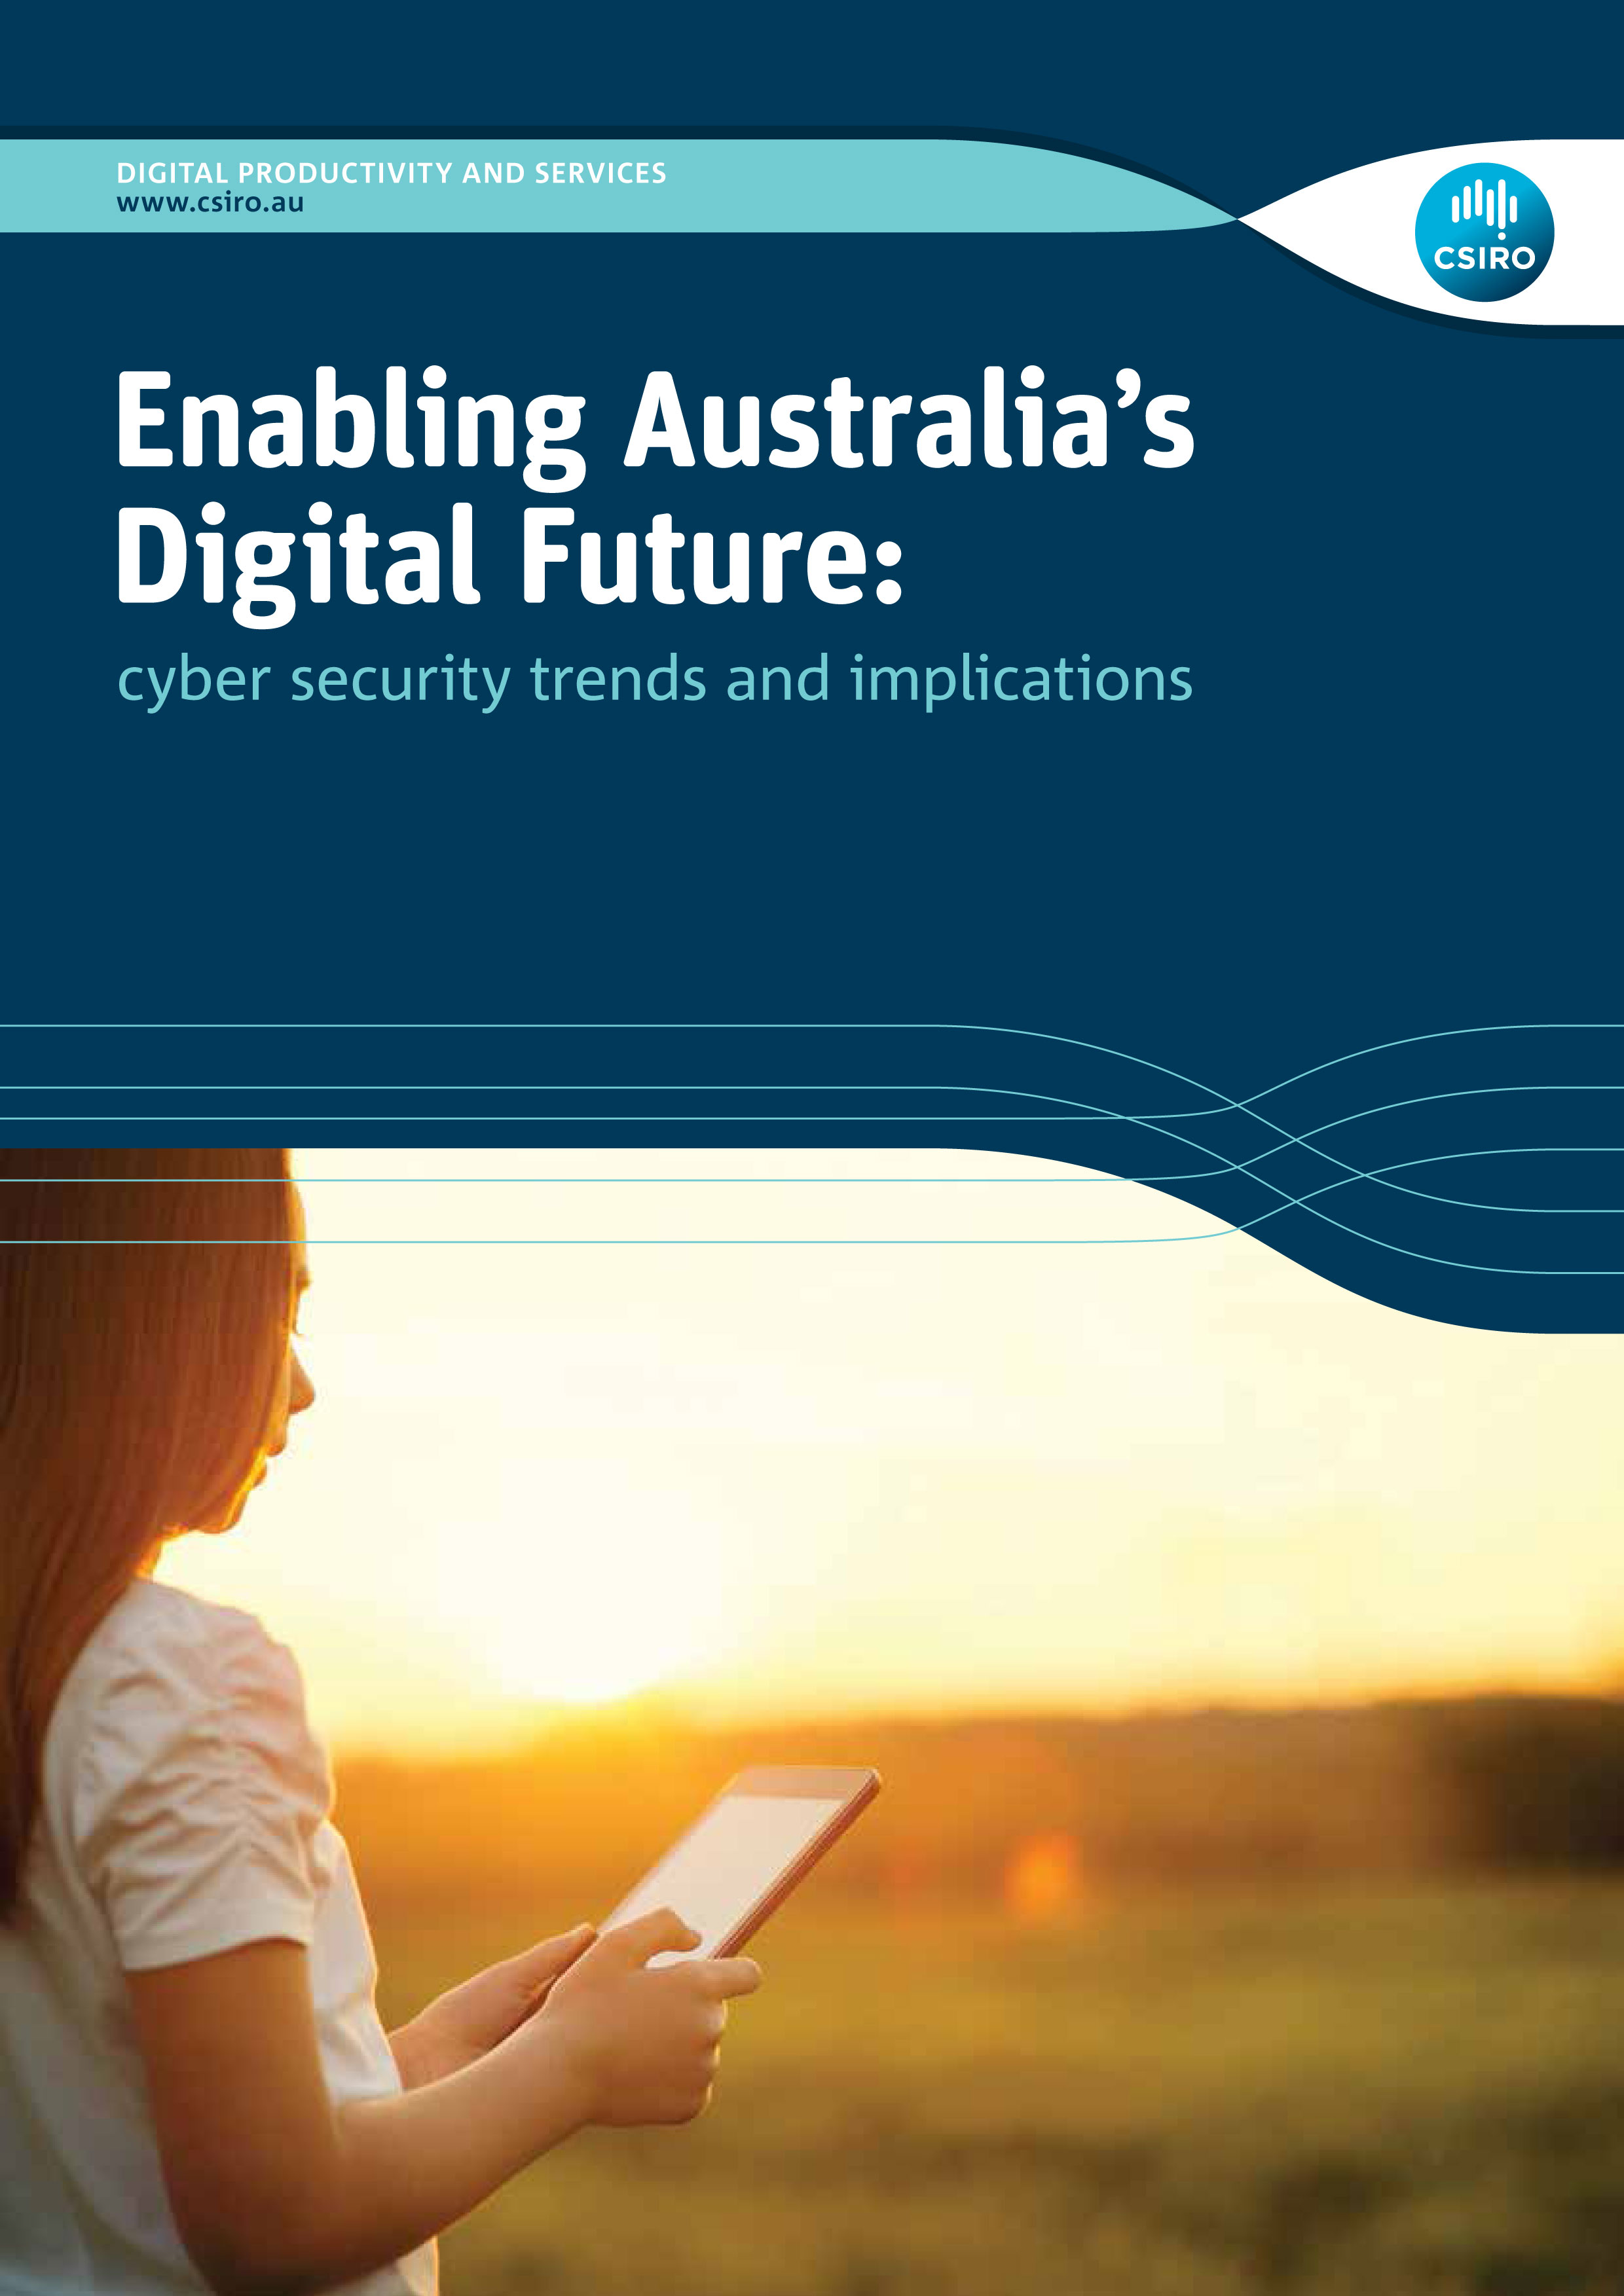 Cover of Enabling Australia's Digital Future report. The subtitle reads 'Cybersecurity trends and implications'.